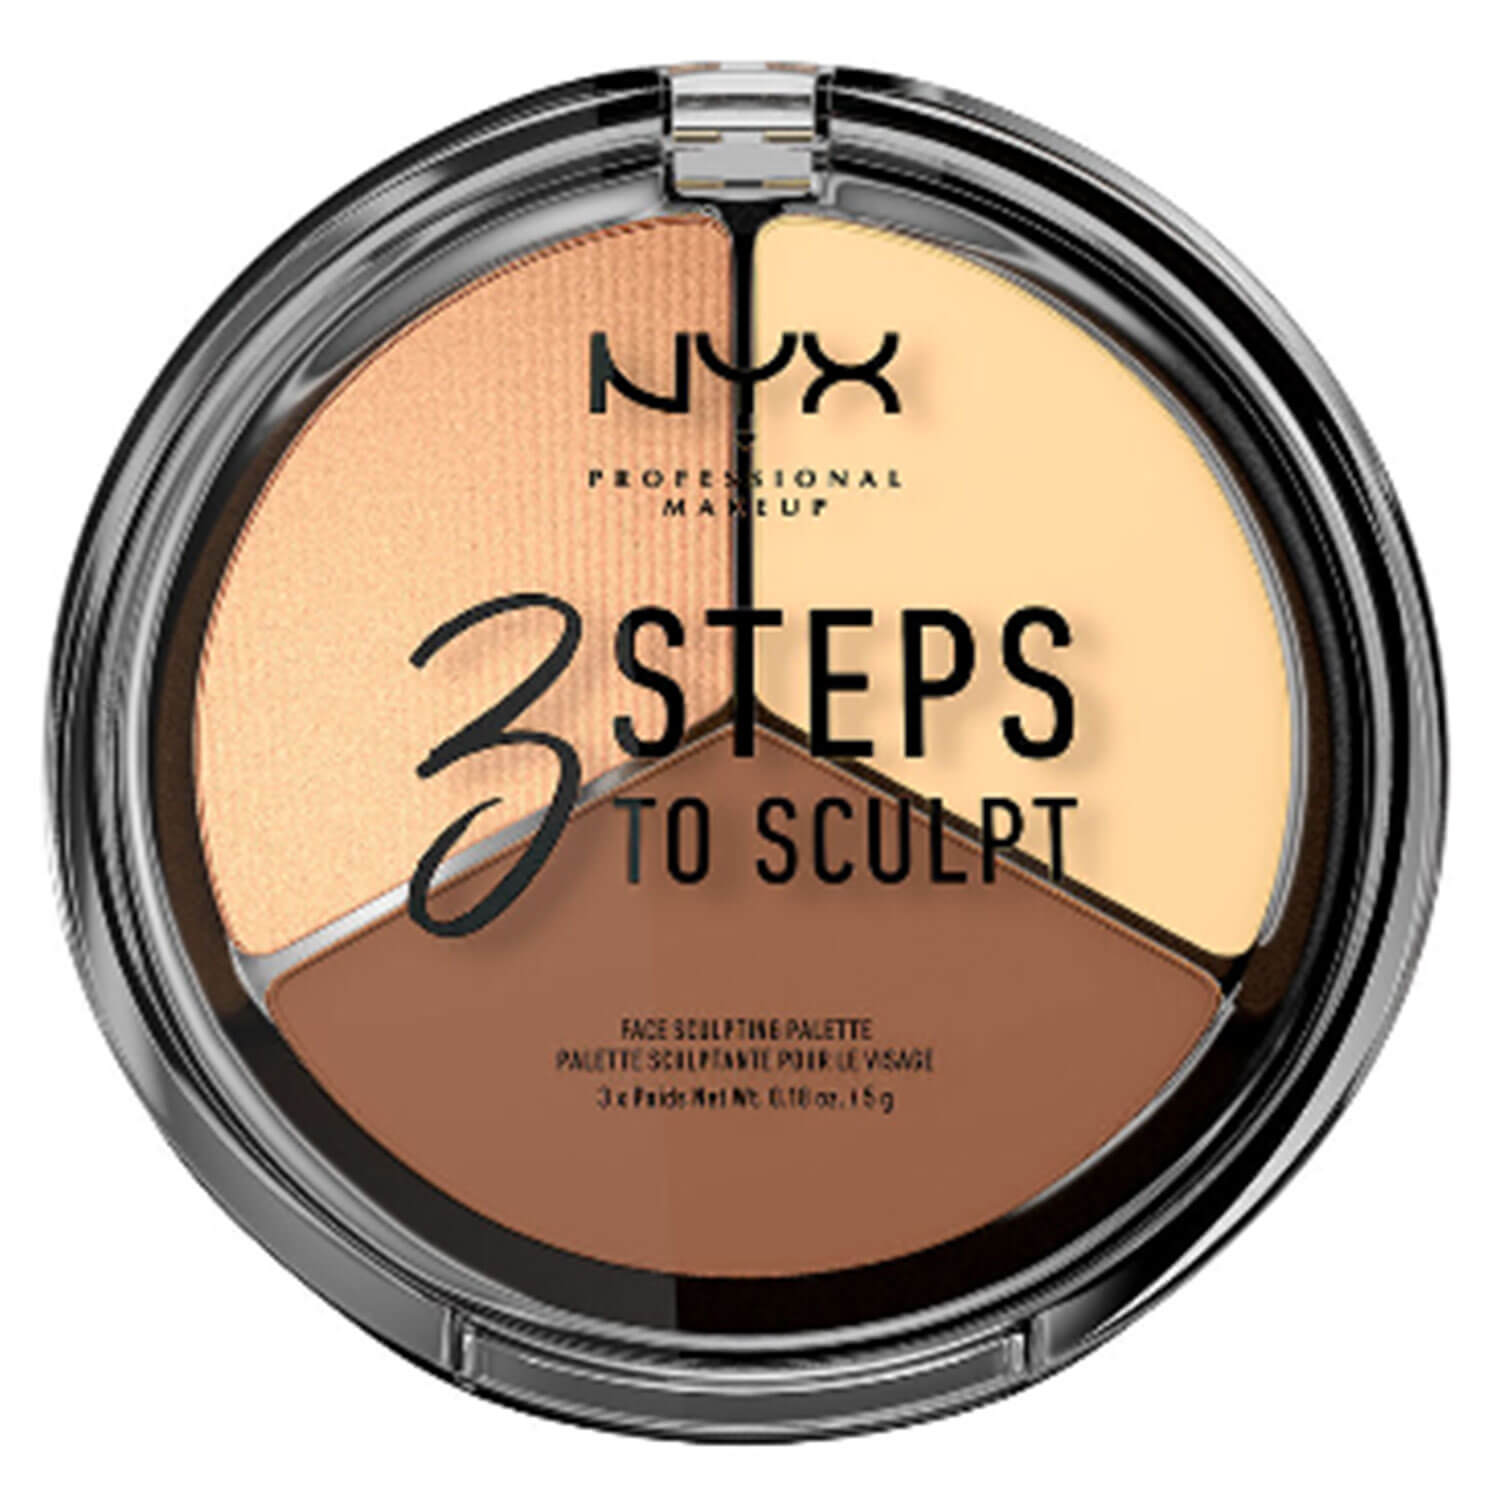 3 Steps to Sculpt - Face Sculpting Palette Light